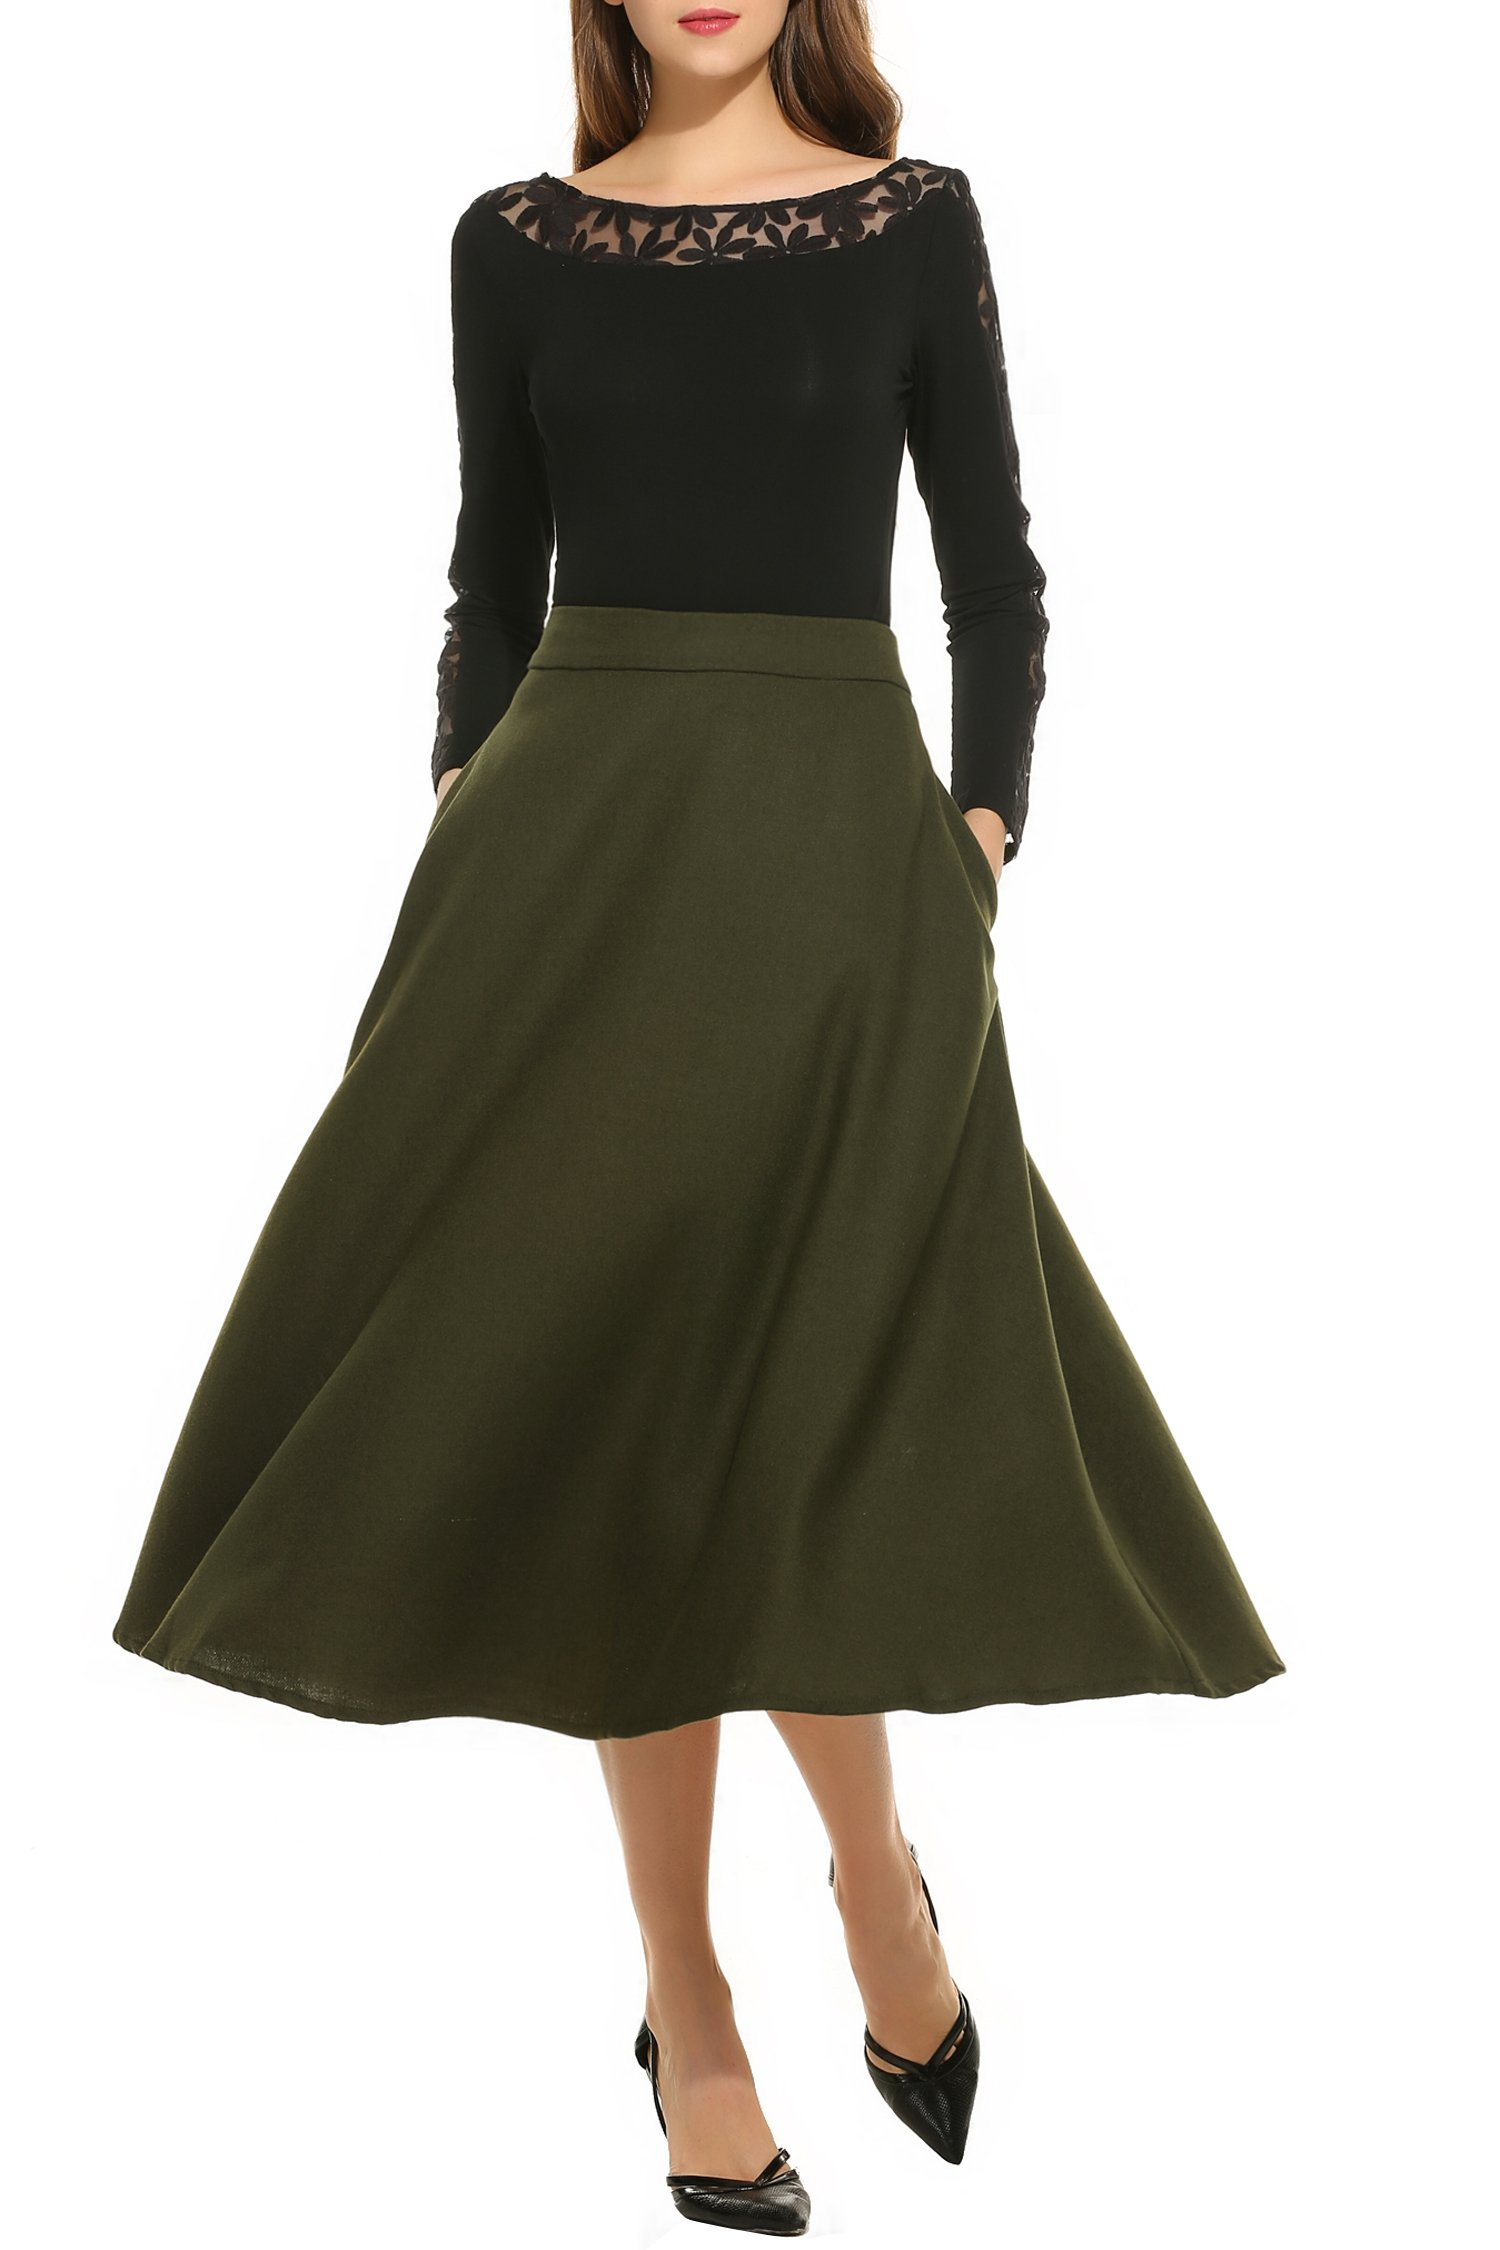 Finejo Women High Waisted Solid A-Line Flared Swing Long Skirt With Pockets